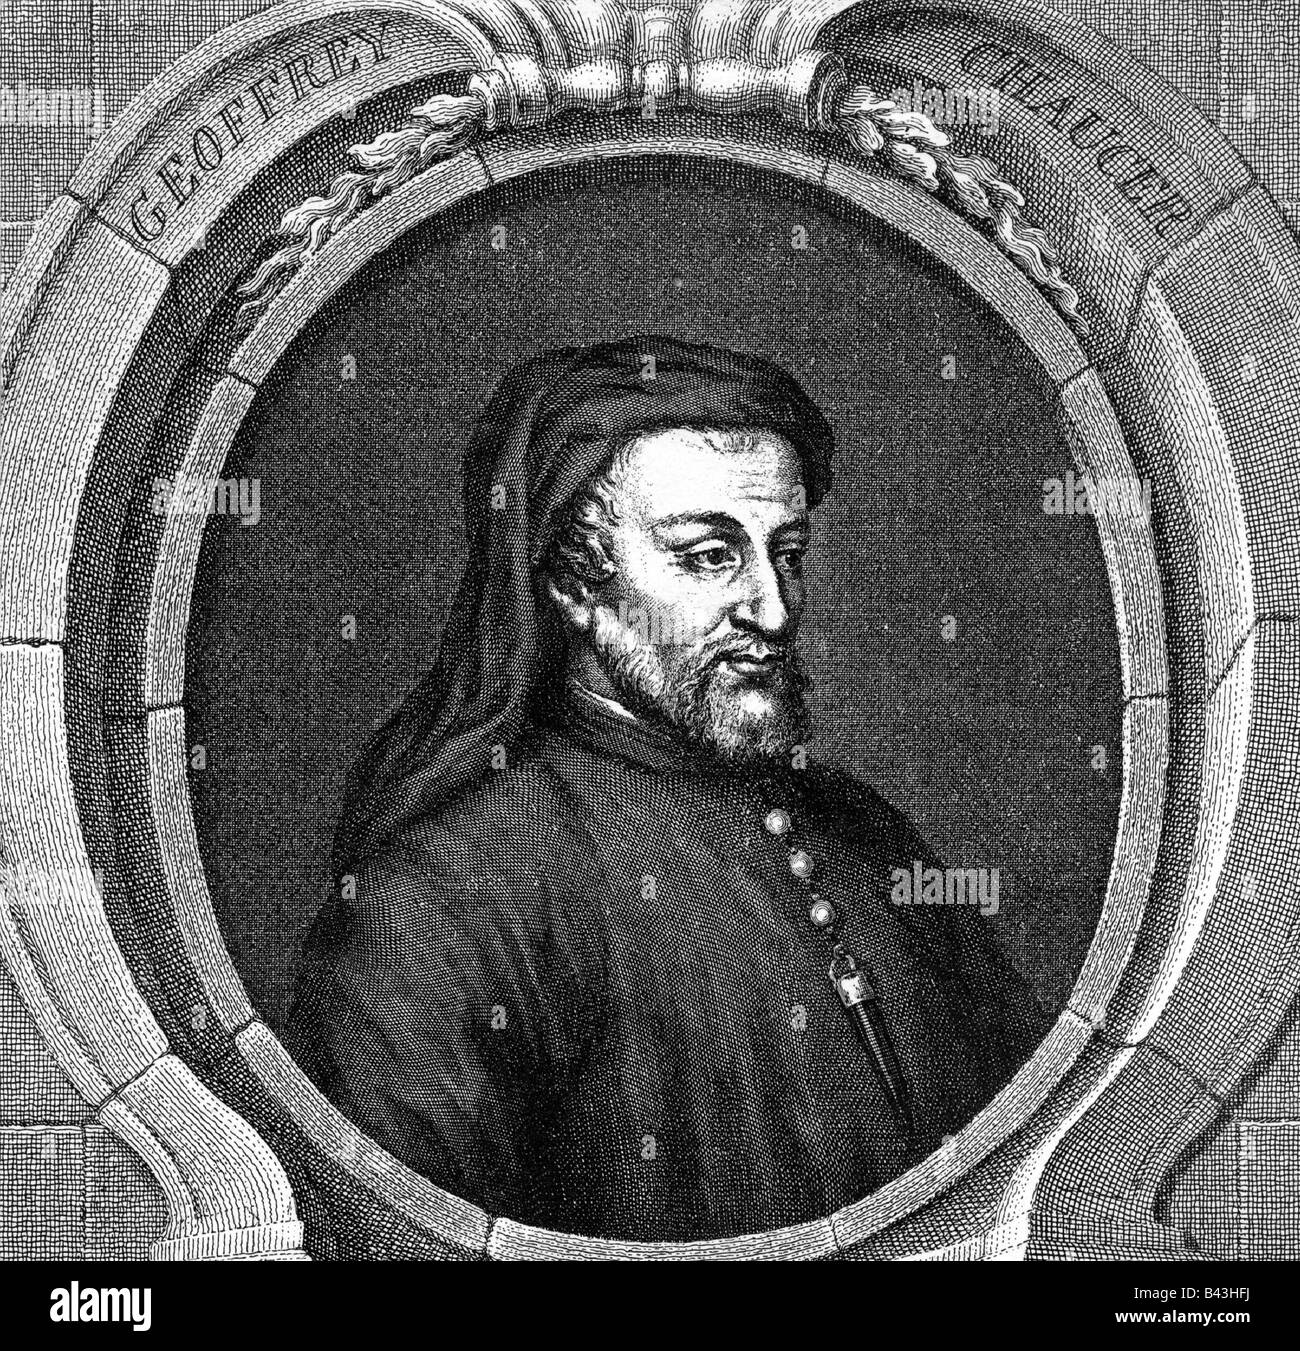 Chaucer, Geoffrey, um 1340 - 25.10.1400, English author / writer, portrait, copper engravng by Jacobus Houbraken, - Stock Image